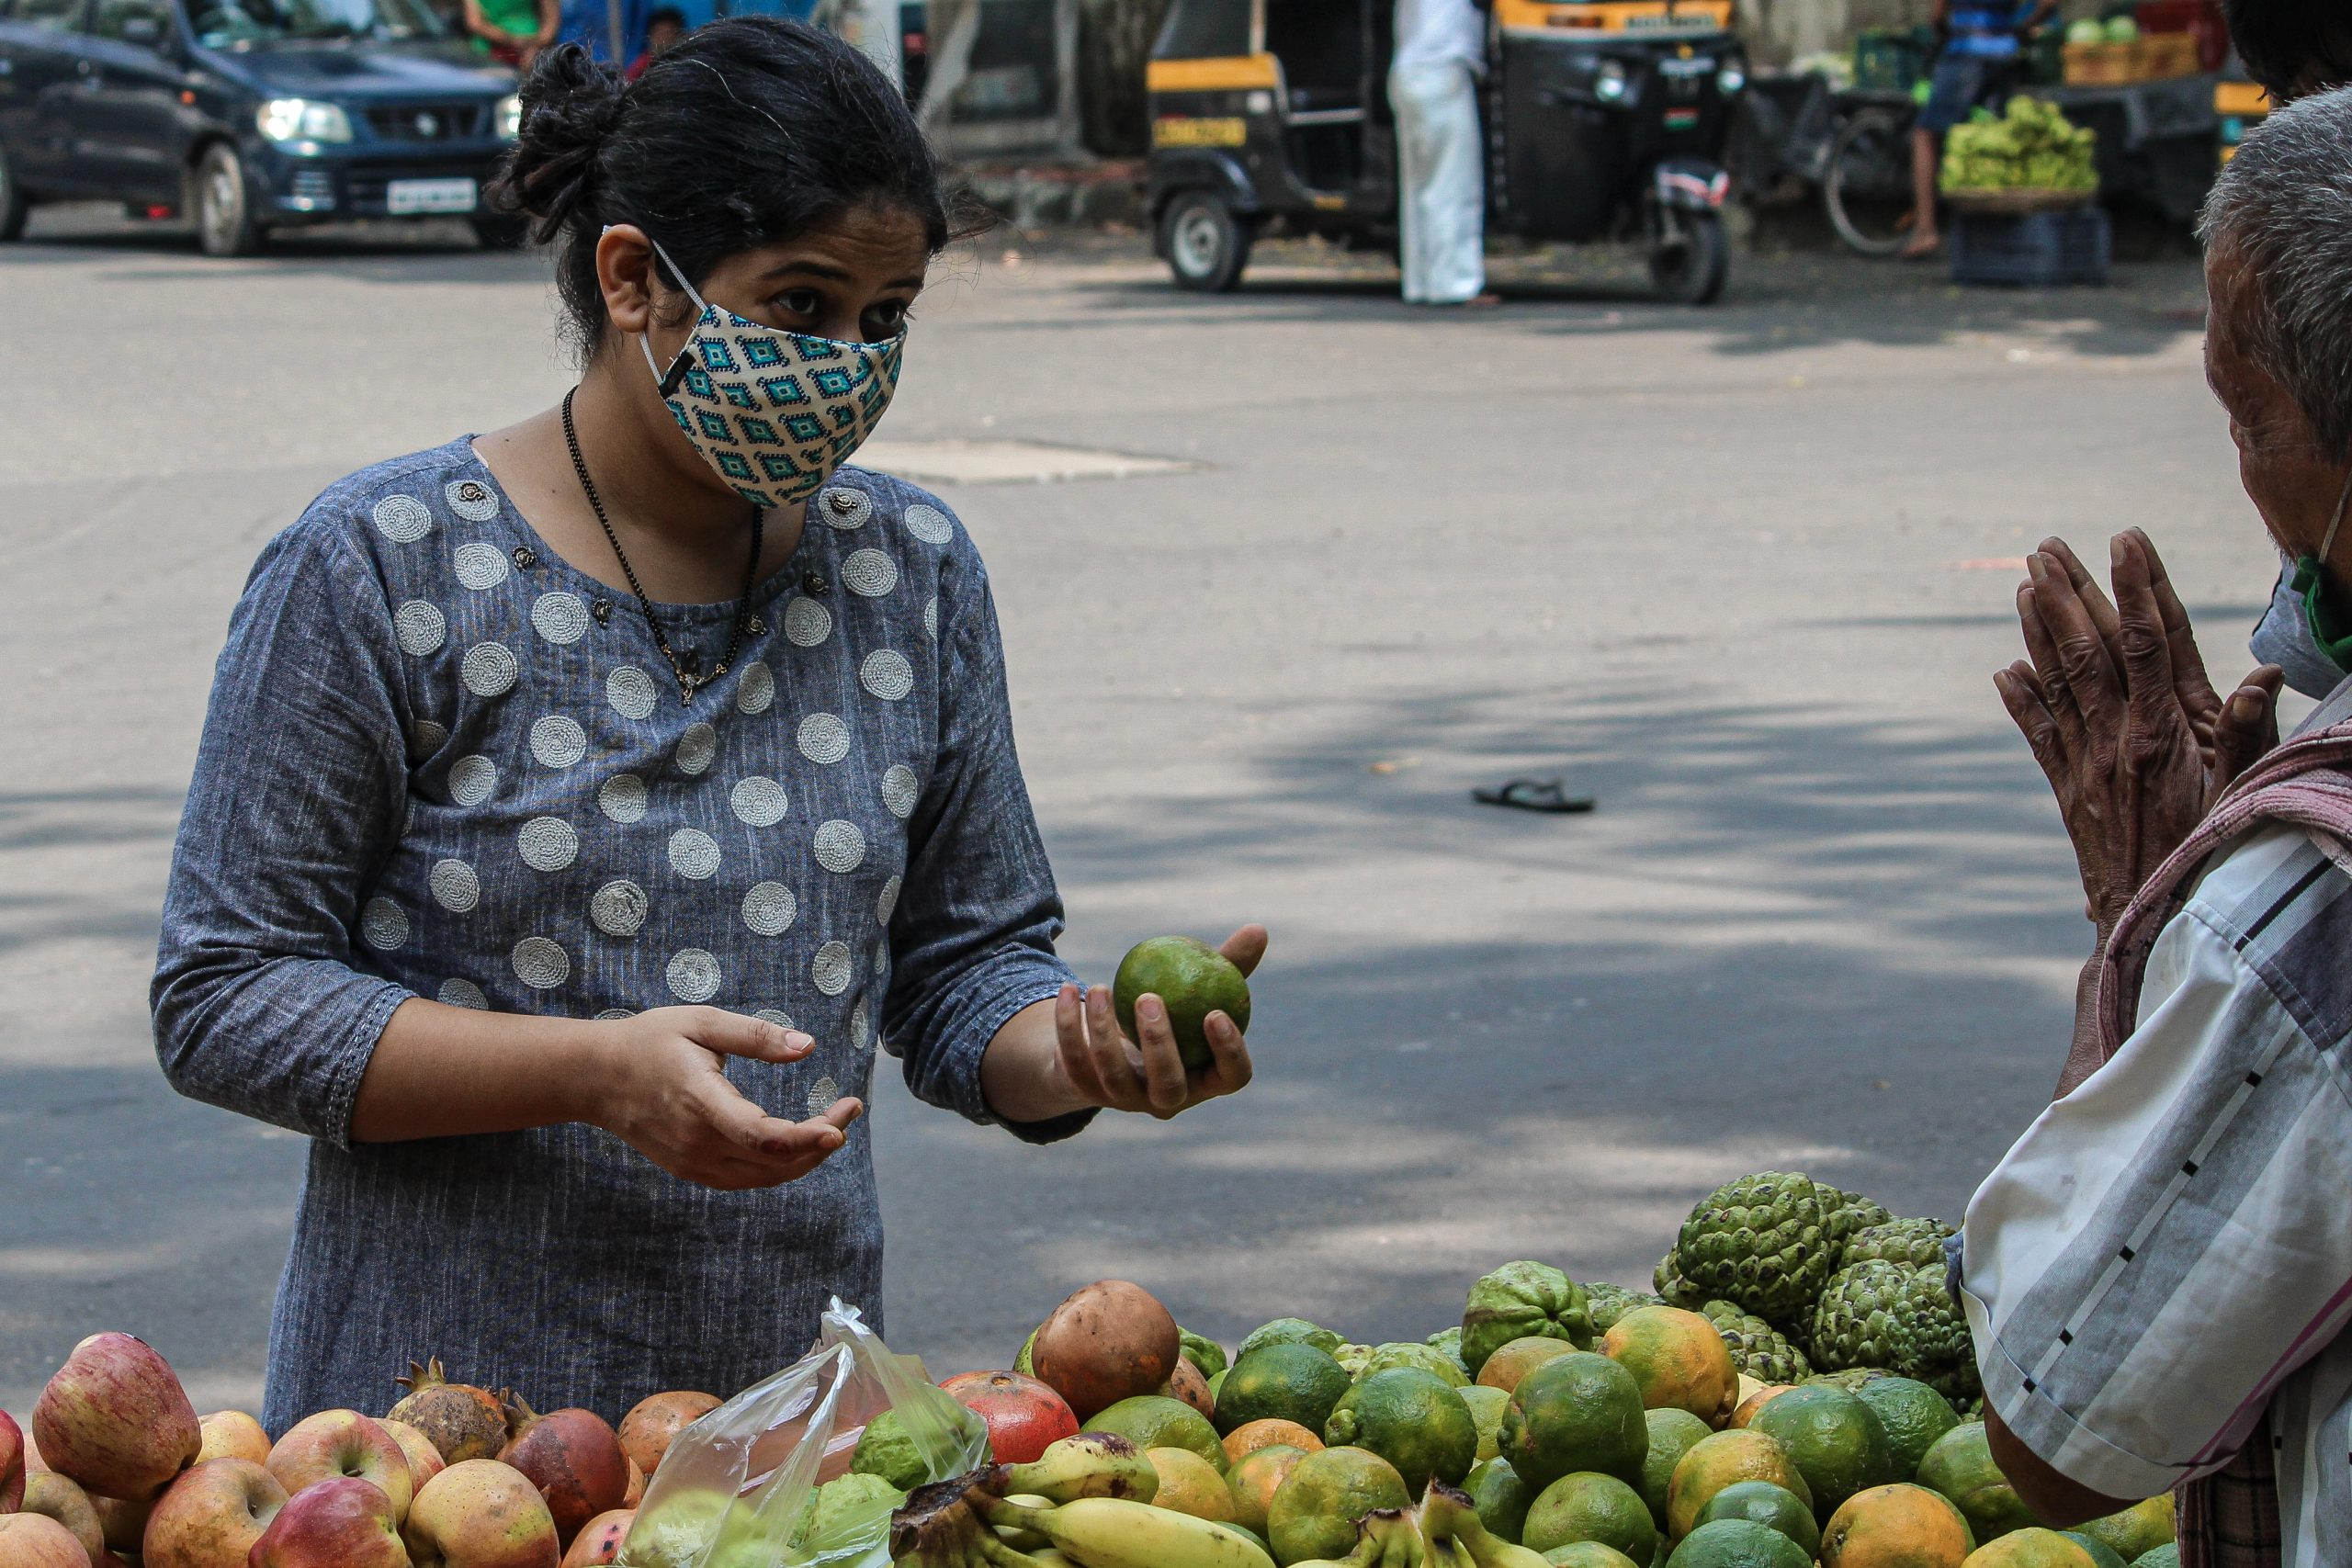 A lady bargaining with vendor